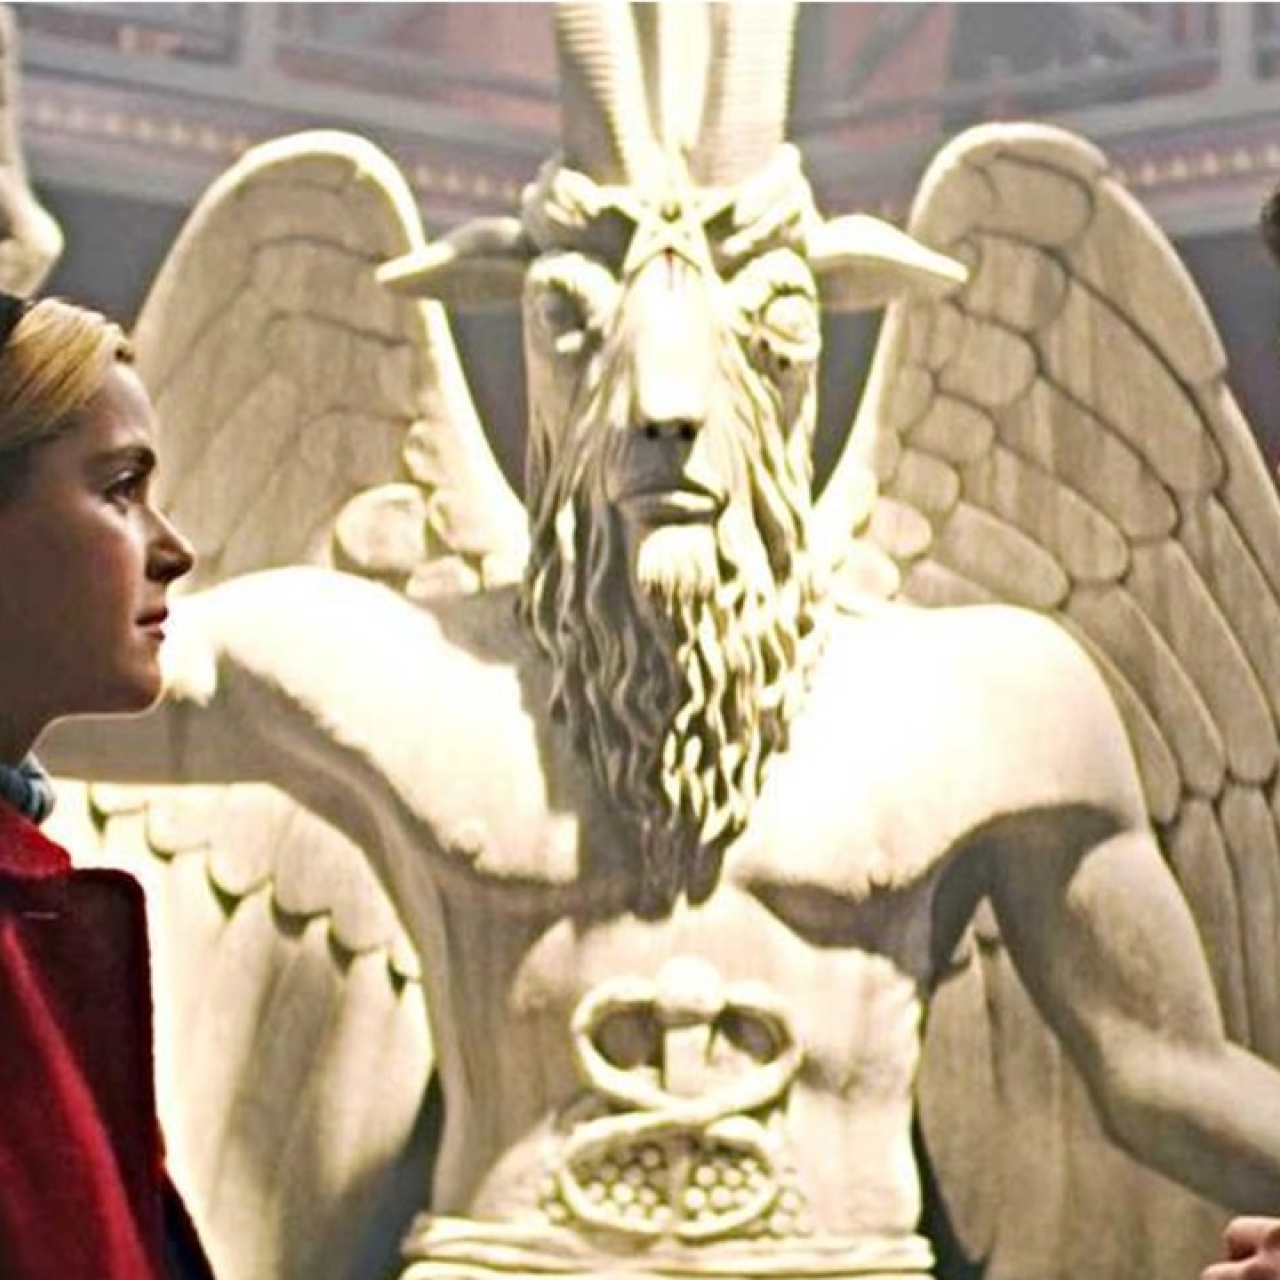 Satanists sue Netflix for US$50 million over use of goat